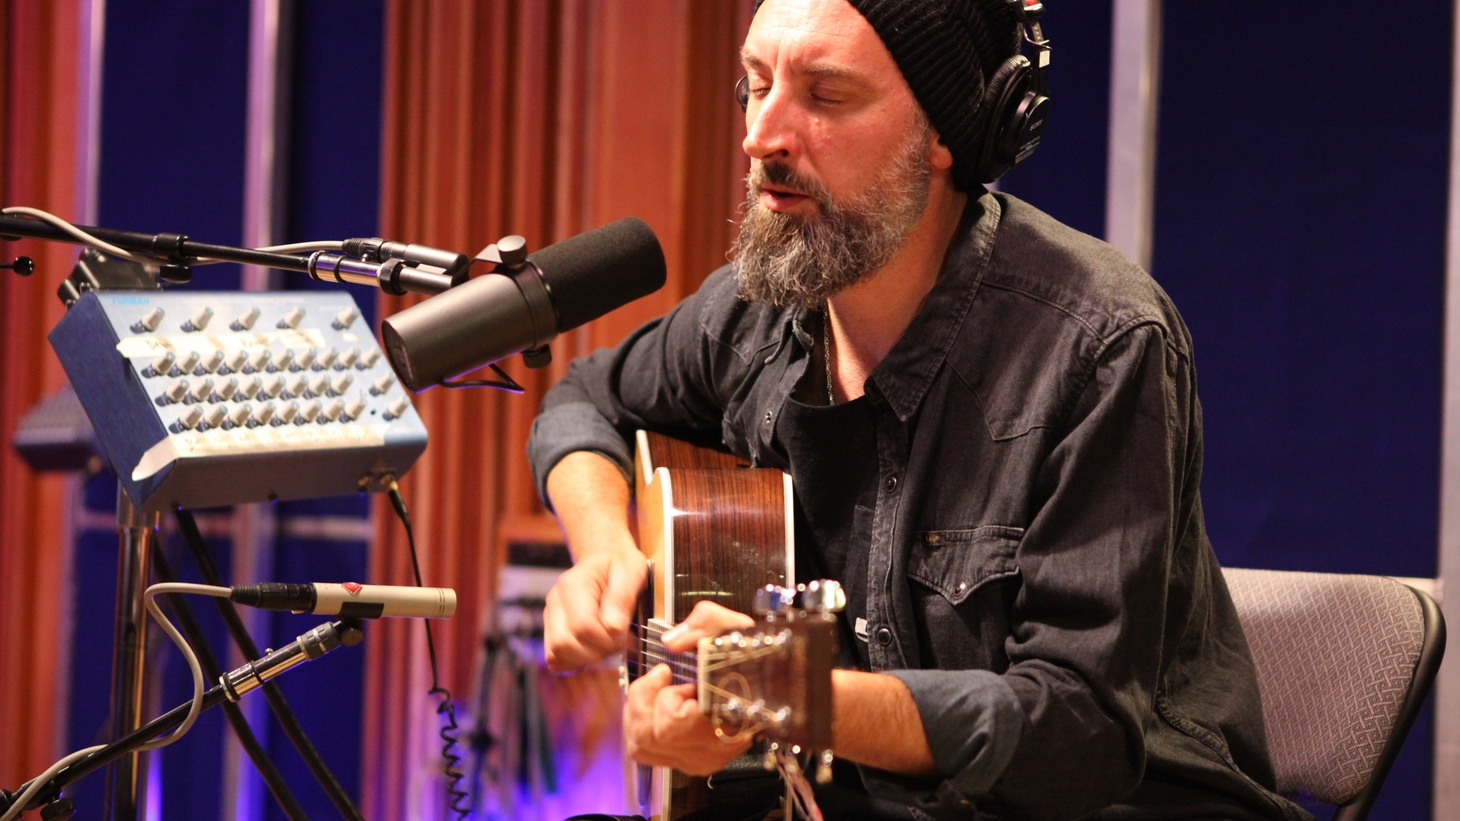 Fink performed exclusive stripped down versions of select tracks off their new album Hard Believer as a trio. It was a magical session and we wanted to share a song from it.